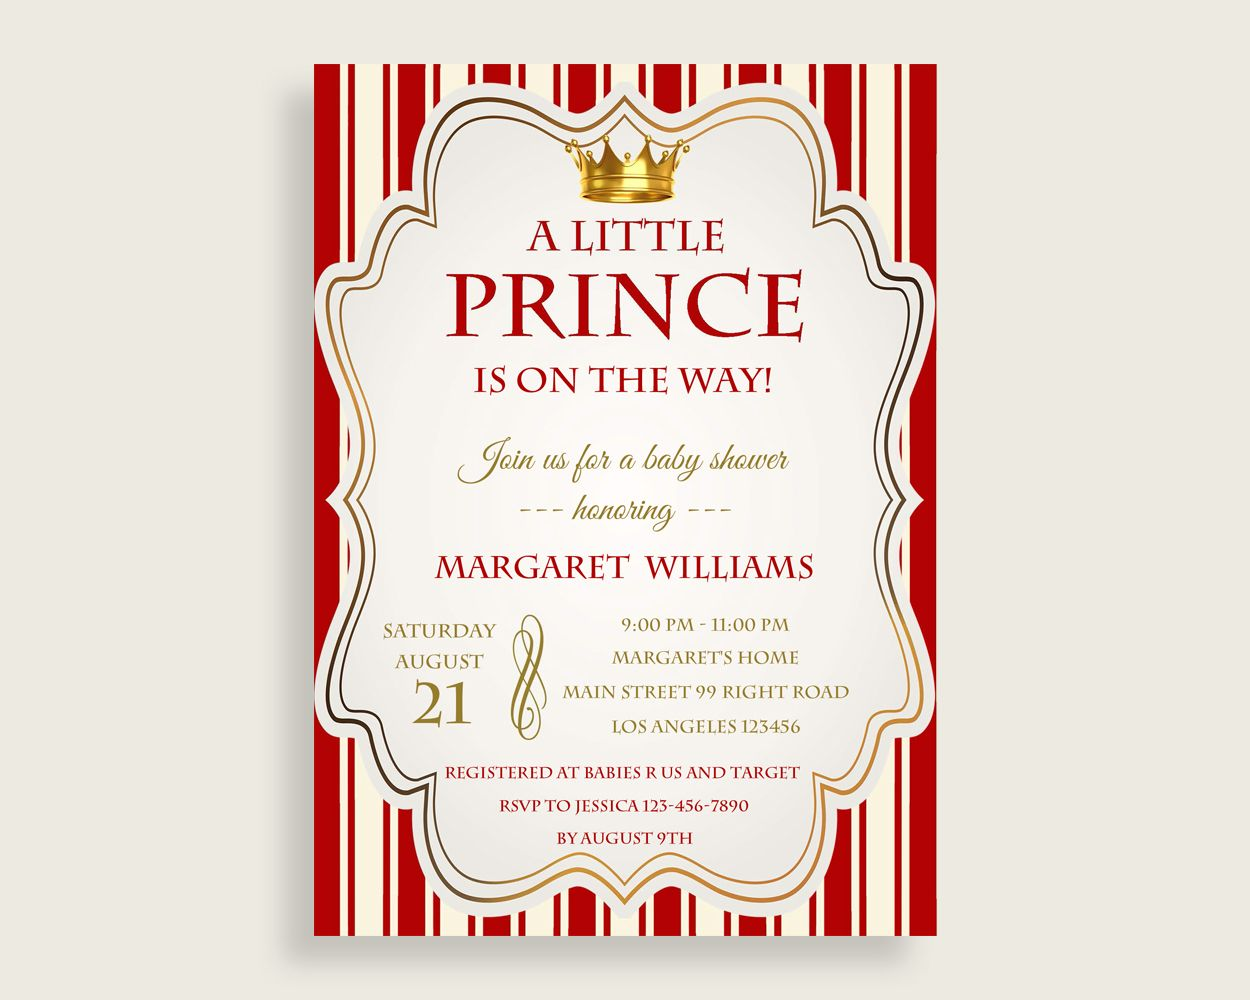 Invitation baby shower invitation prince baby shower invitation red invitation baby shower invitation prince baby shower invitation red gold baby shower prince invitation paper supplies stopboris Gallery